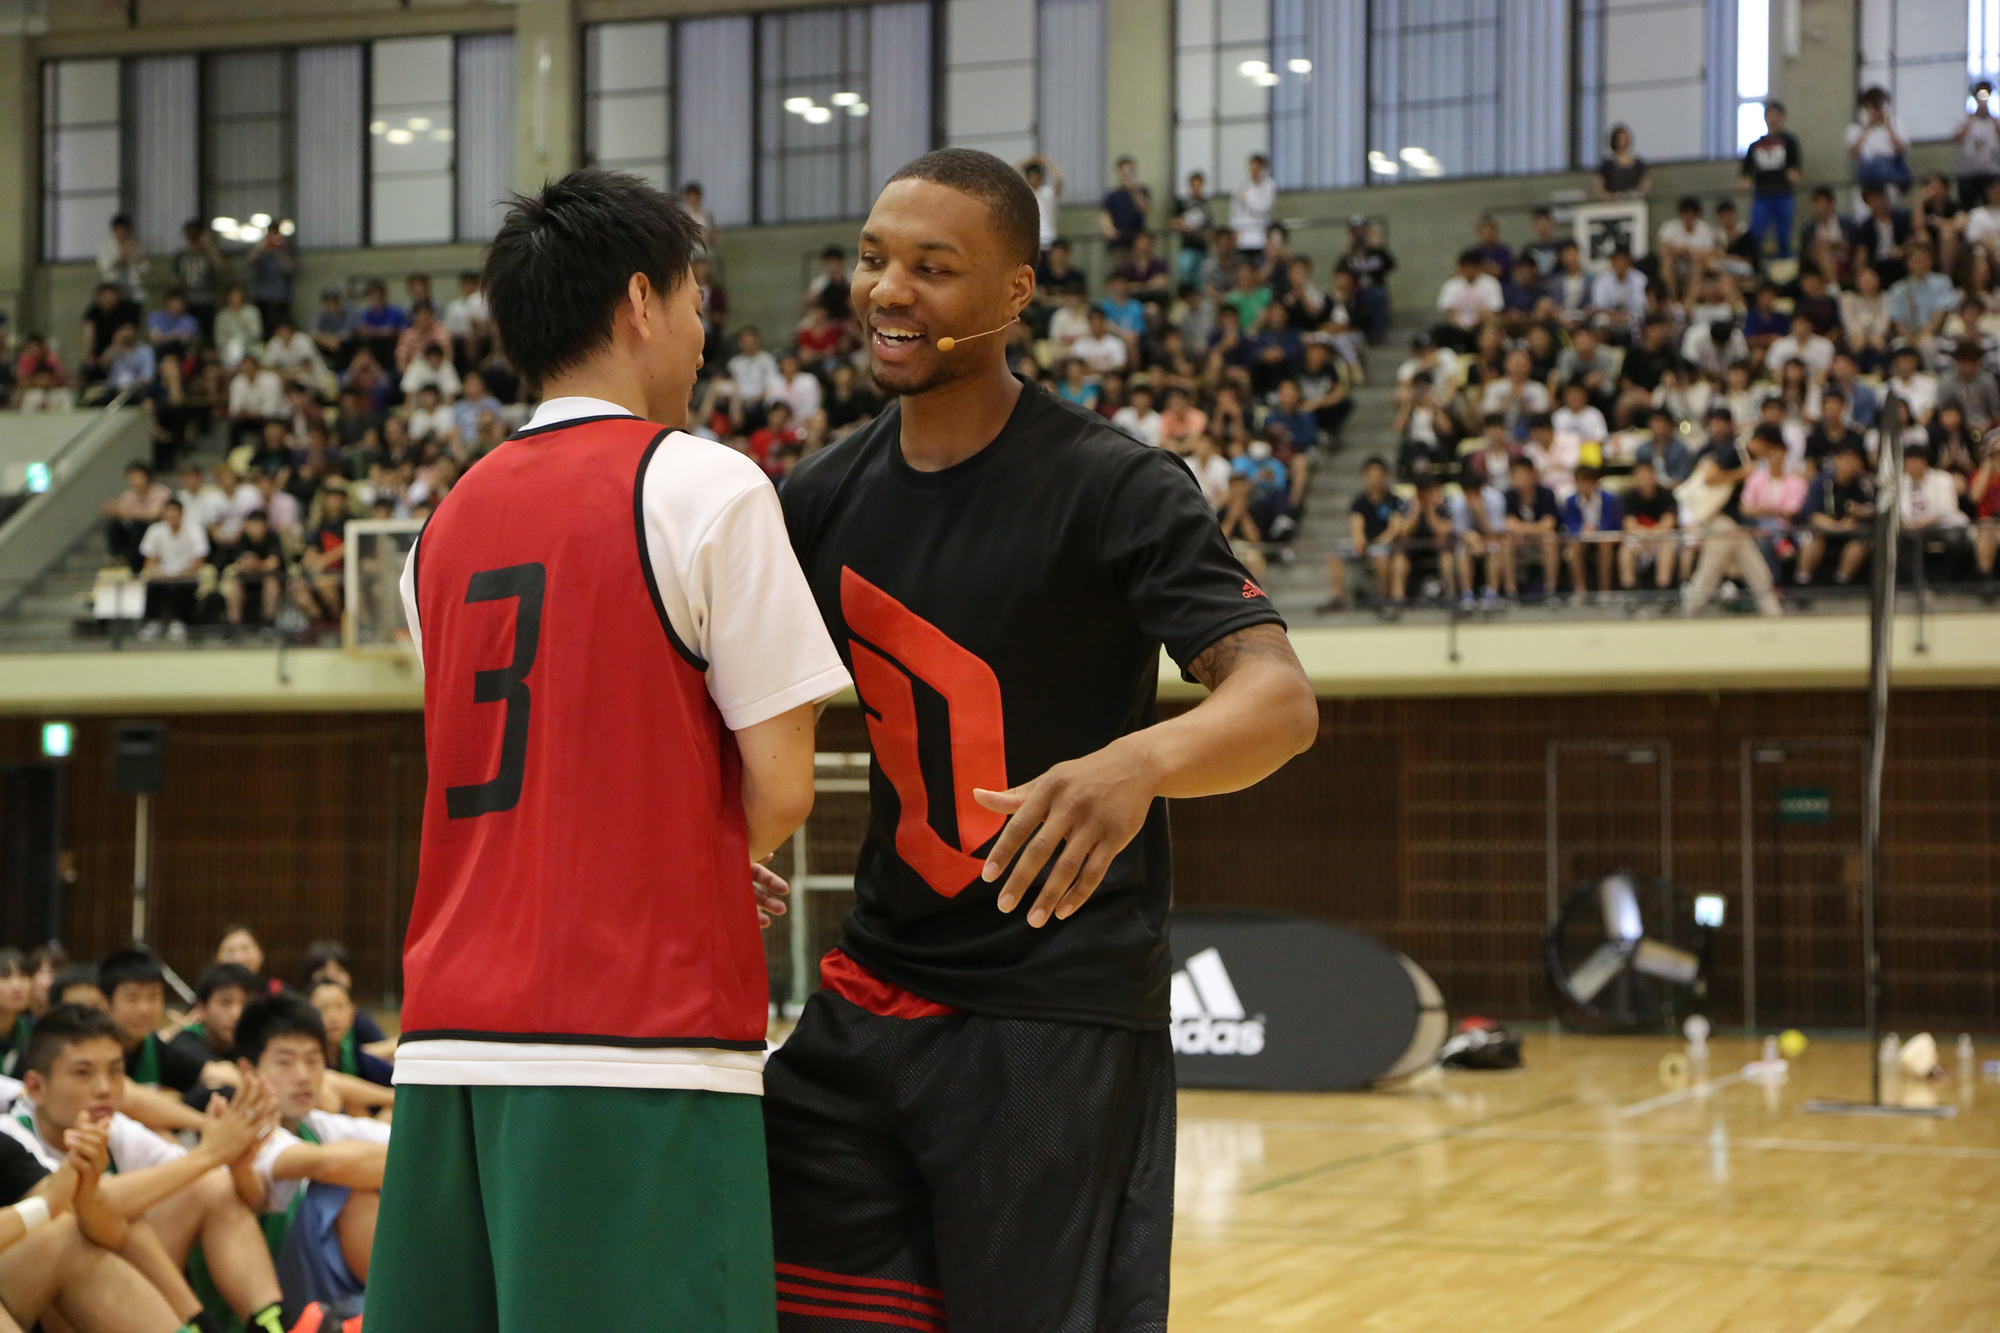 timeless design a4ed0 b4191 adidas Damian Lillard Take on Summer Tour in Tokyo, Japan, 3 Tokyo (June